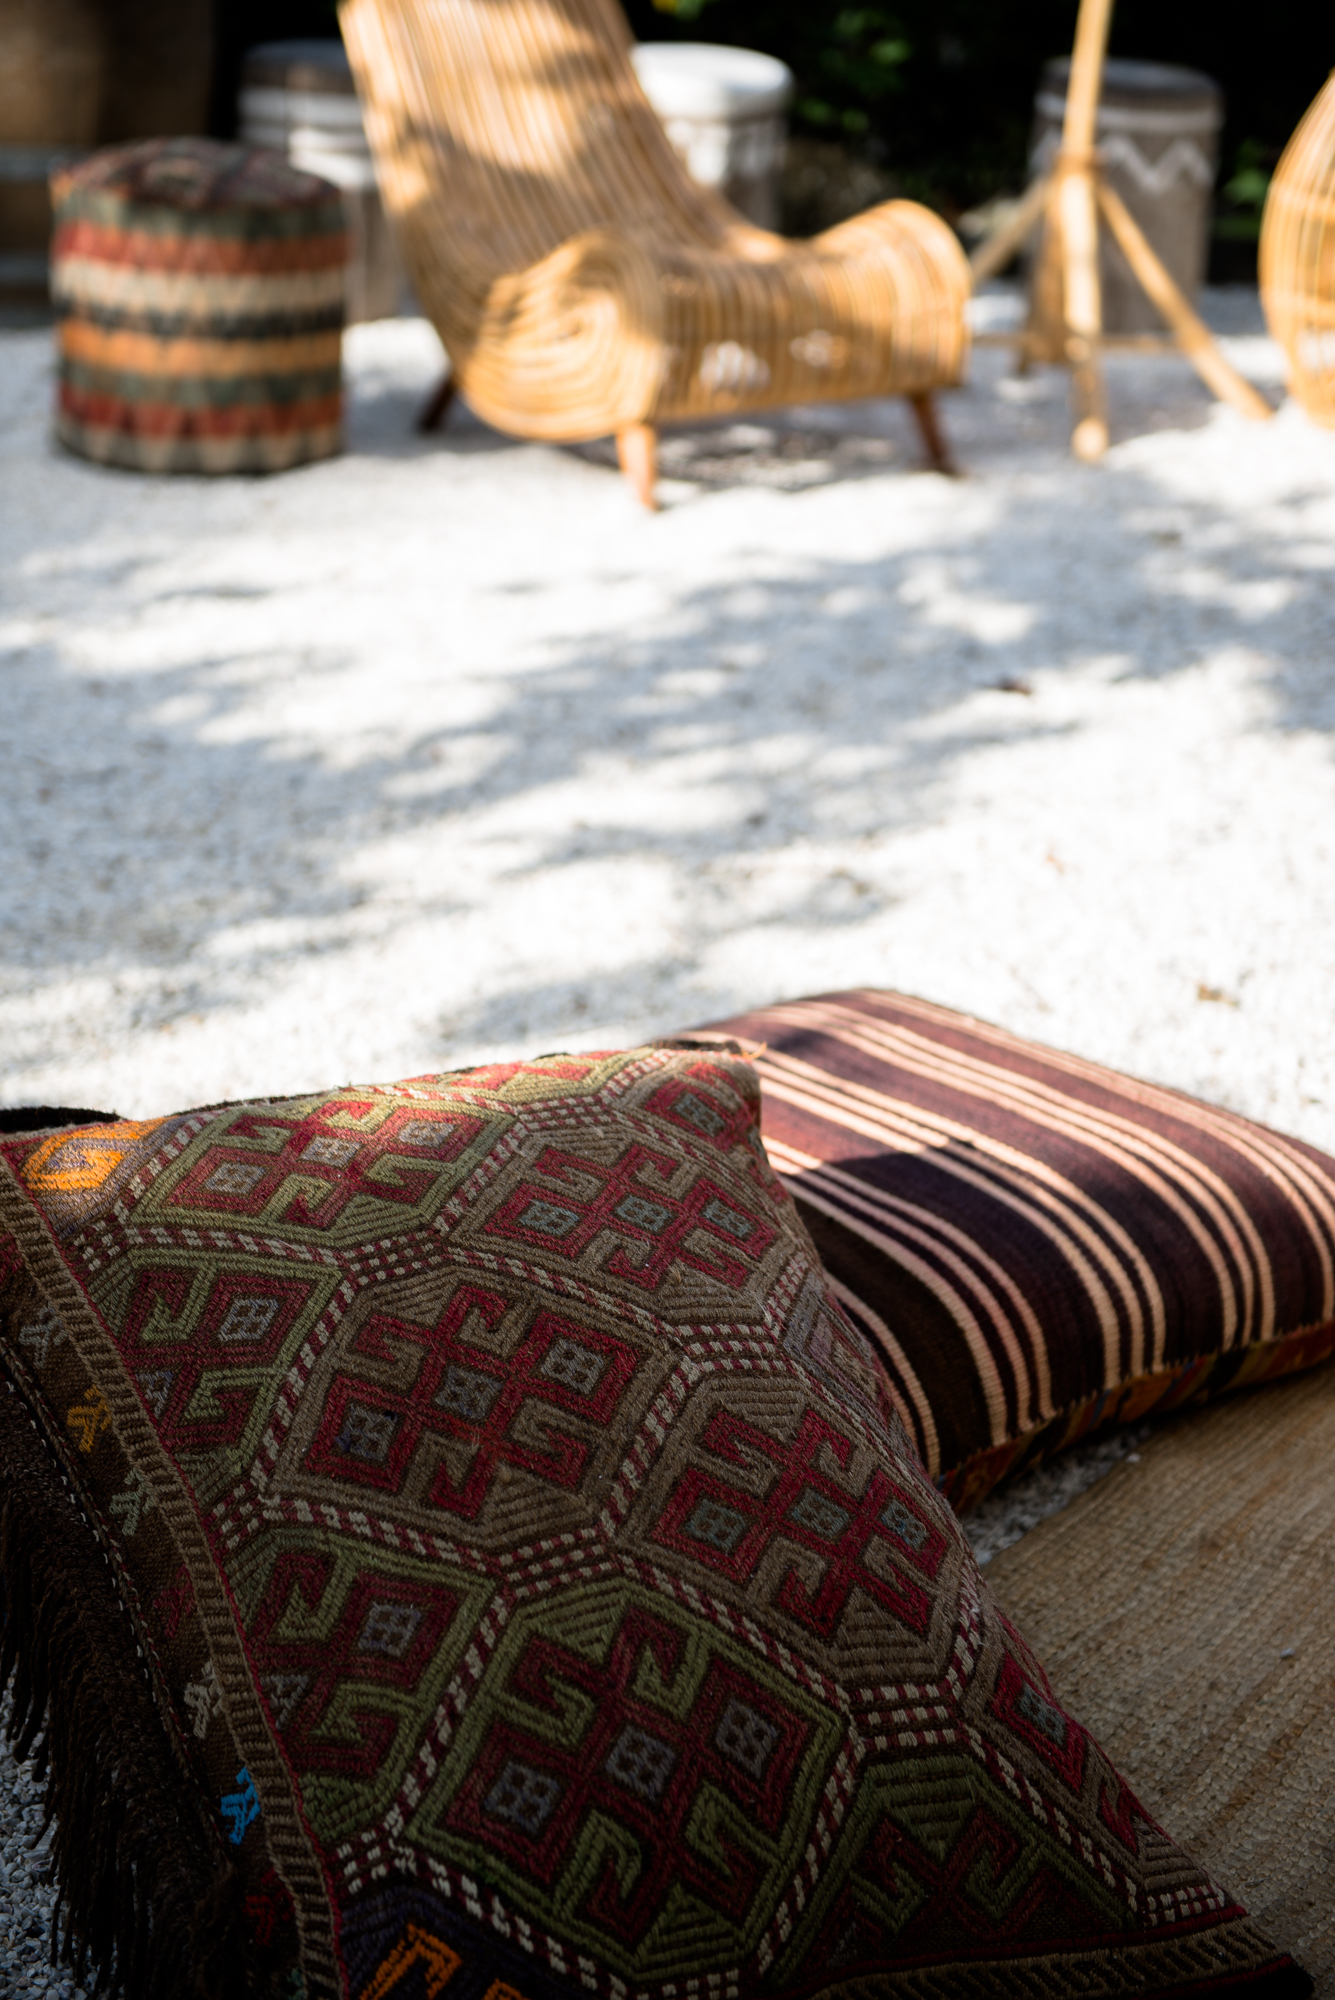 Boho Cushion Range (14 pieces) | $160 Set | Qty 1